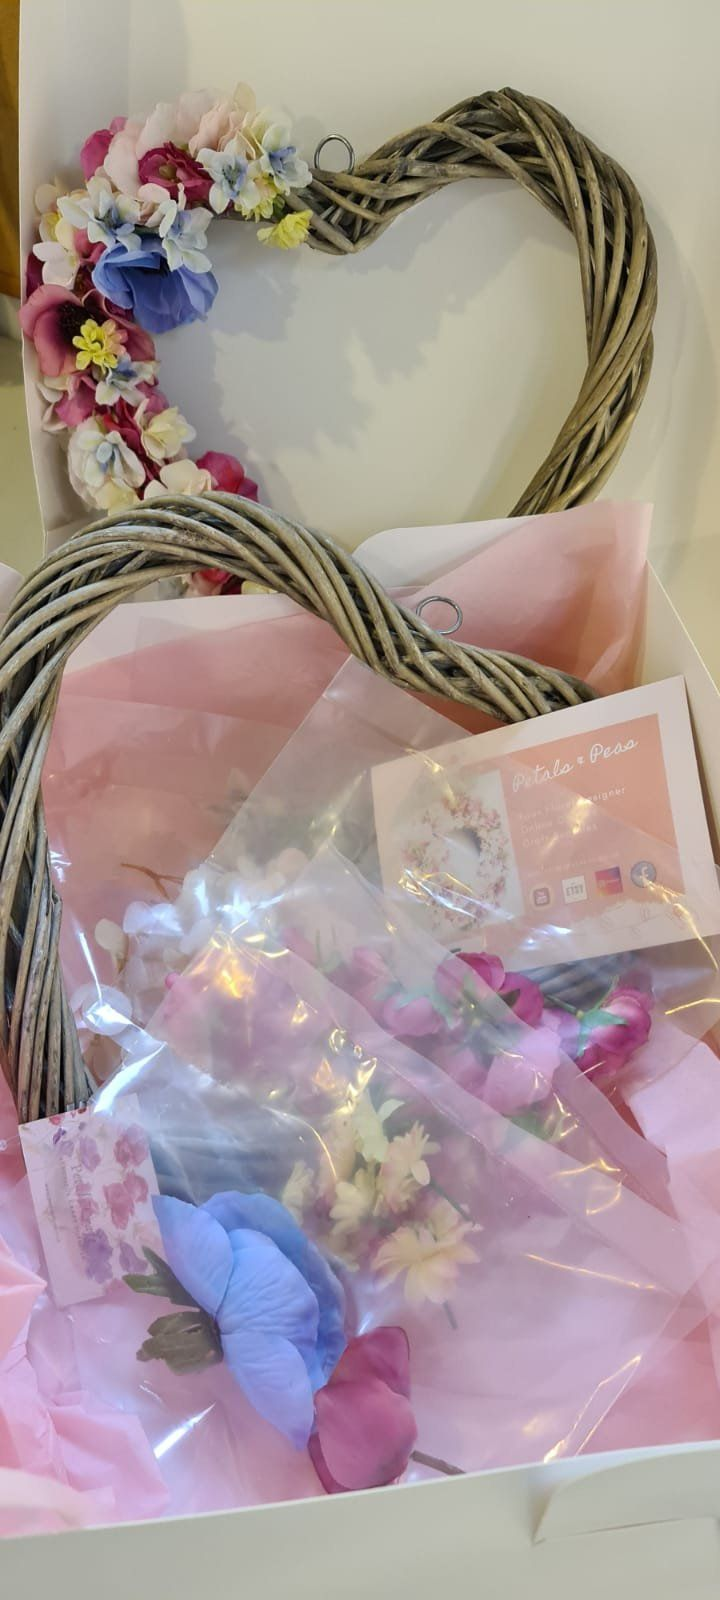 Photo of Wreath Making Kit. Soft pastel heart Wreath to make at home. Luxury Gifts. Lockdown Crafts. Make your own  designer wreath. DIY Wreaths